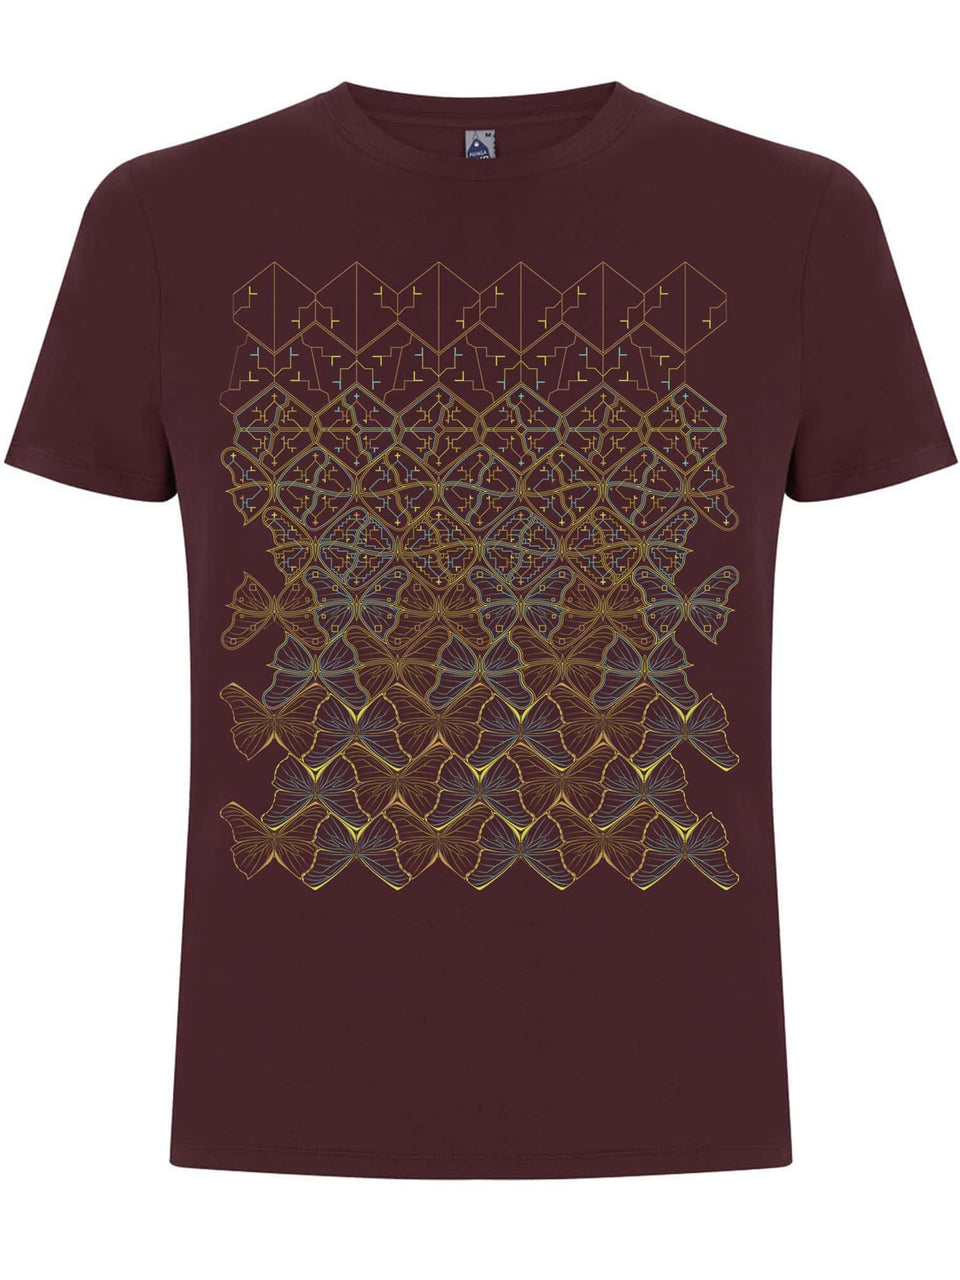 Butterfly Morph Made To Order Men T-Shirt - Burgundy